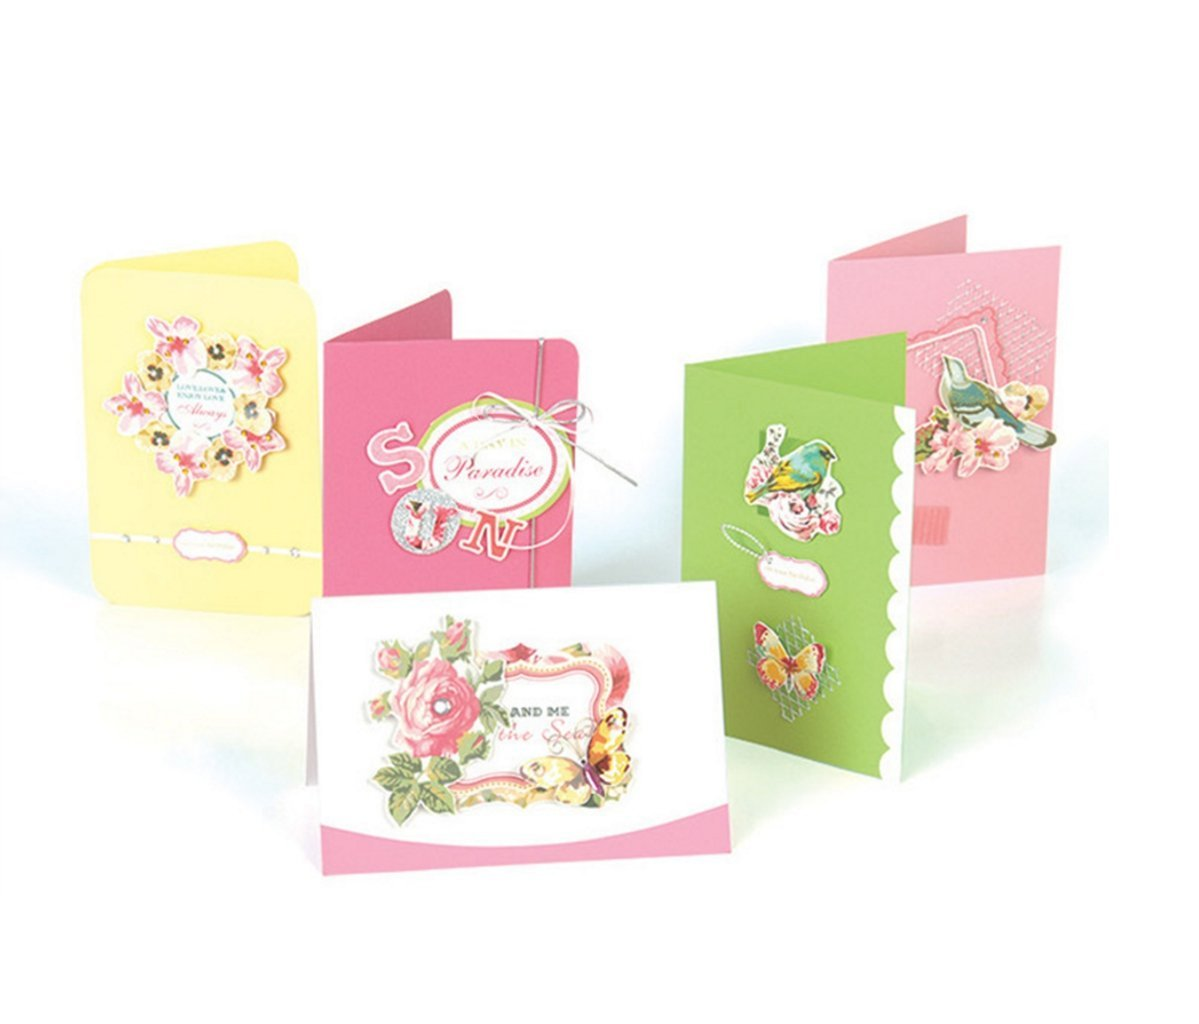 GUchina Make Your Own Greeting Cards Kit, Do-It-Yourself Cards Crafter-15 Cards Set(15 Envelopes Included)- for Beginners/ Kids/Party/Holiday/Gifts/ Mother's Day(SKB009)